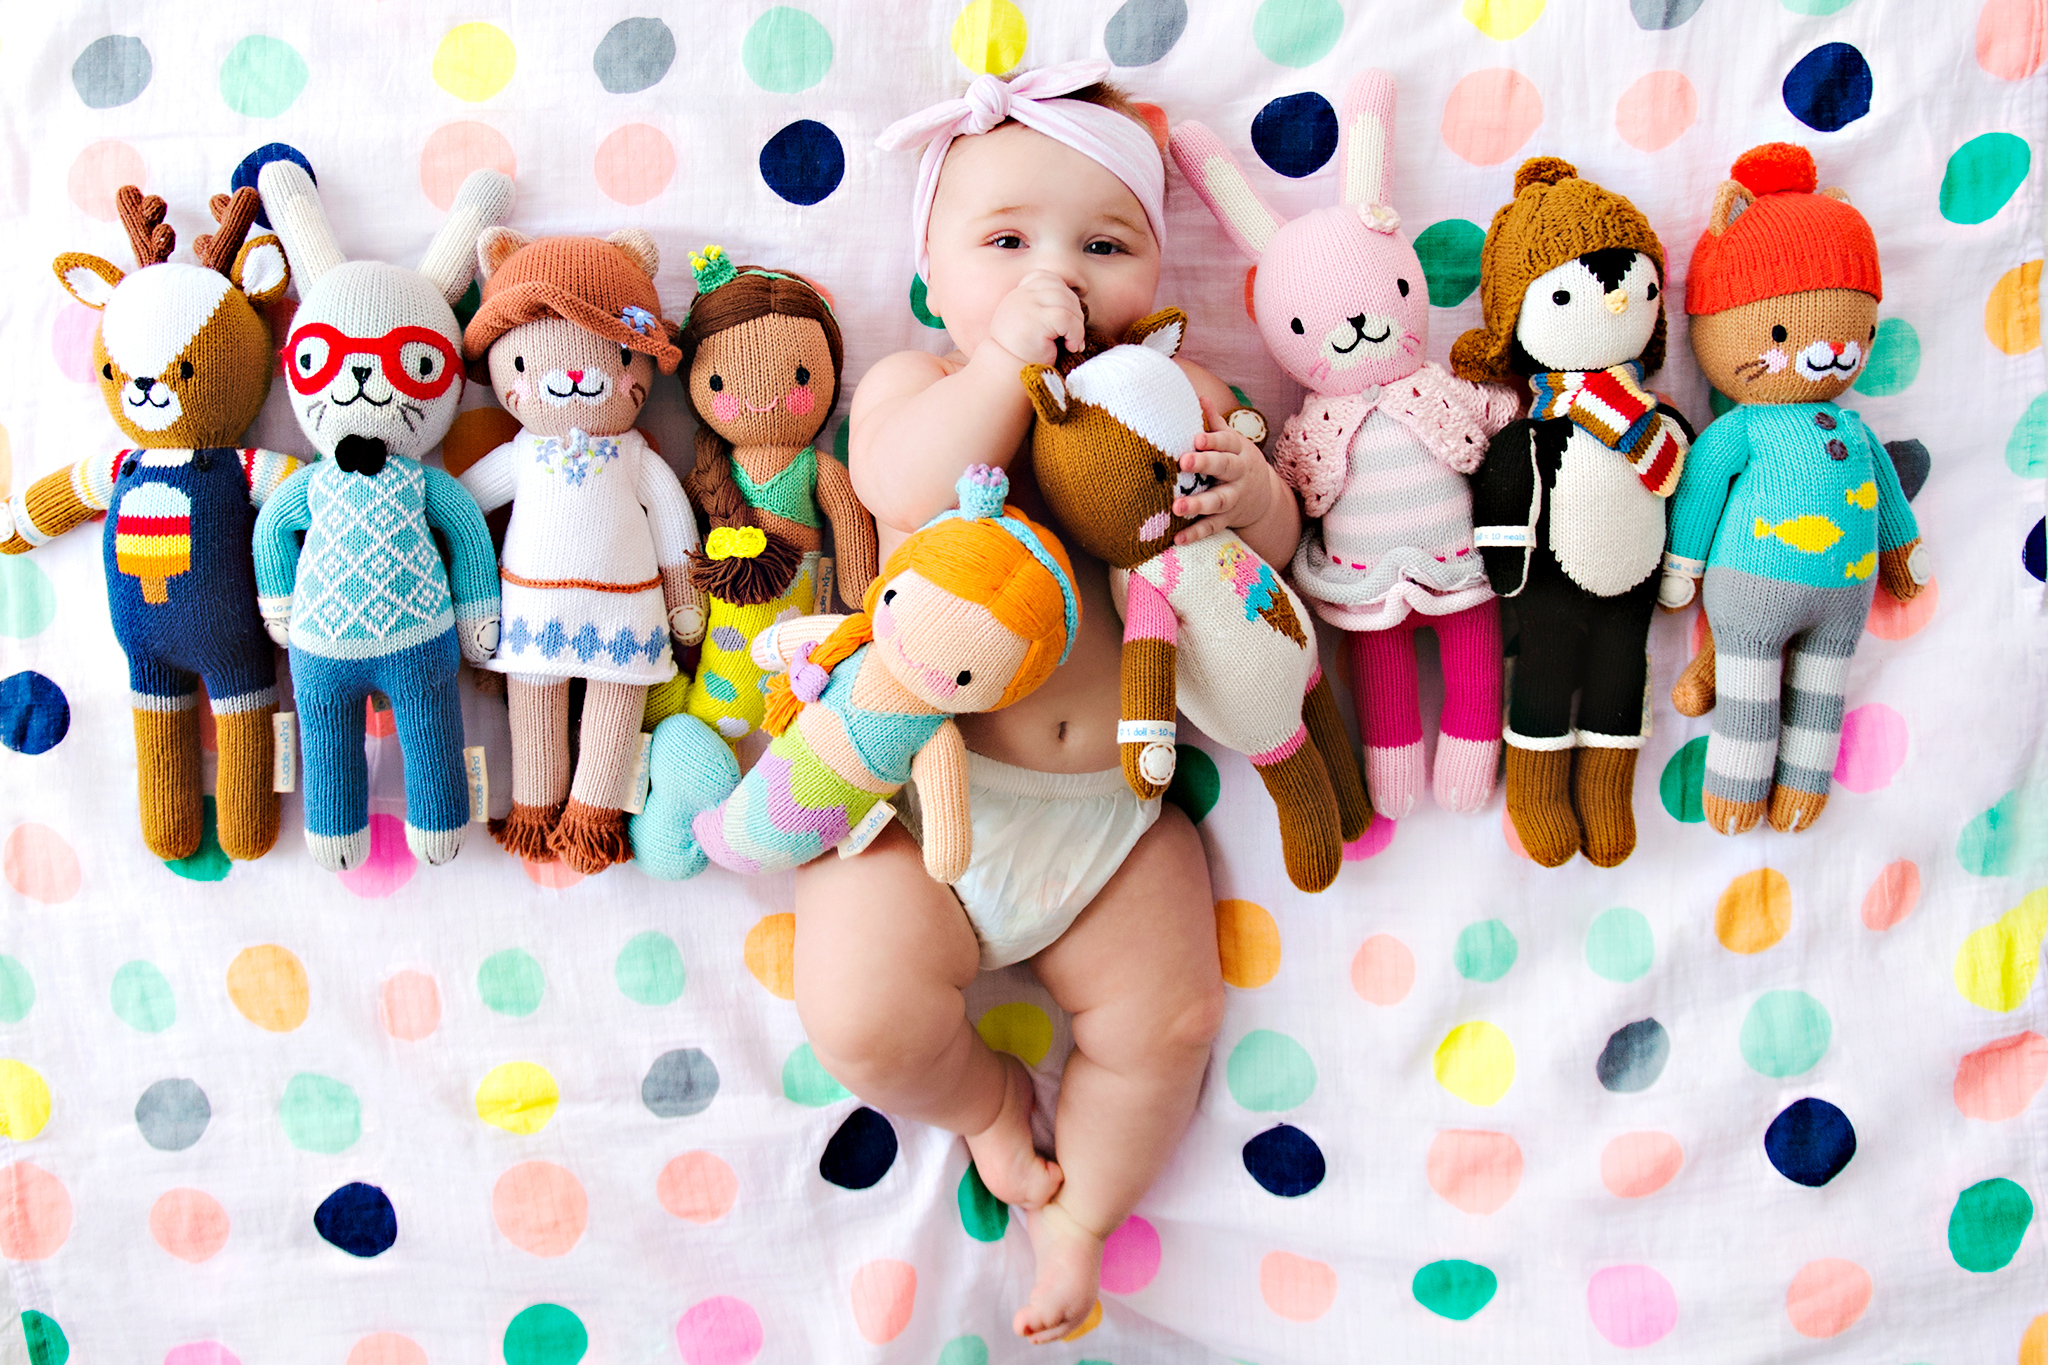 A baby lying on a blanket with numerous stuffed dolls lined up beside the baby.